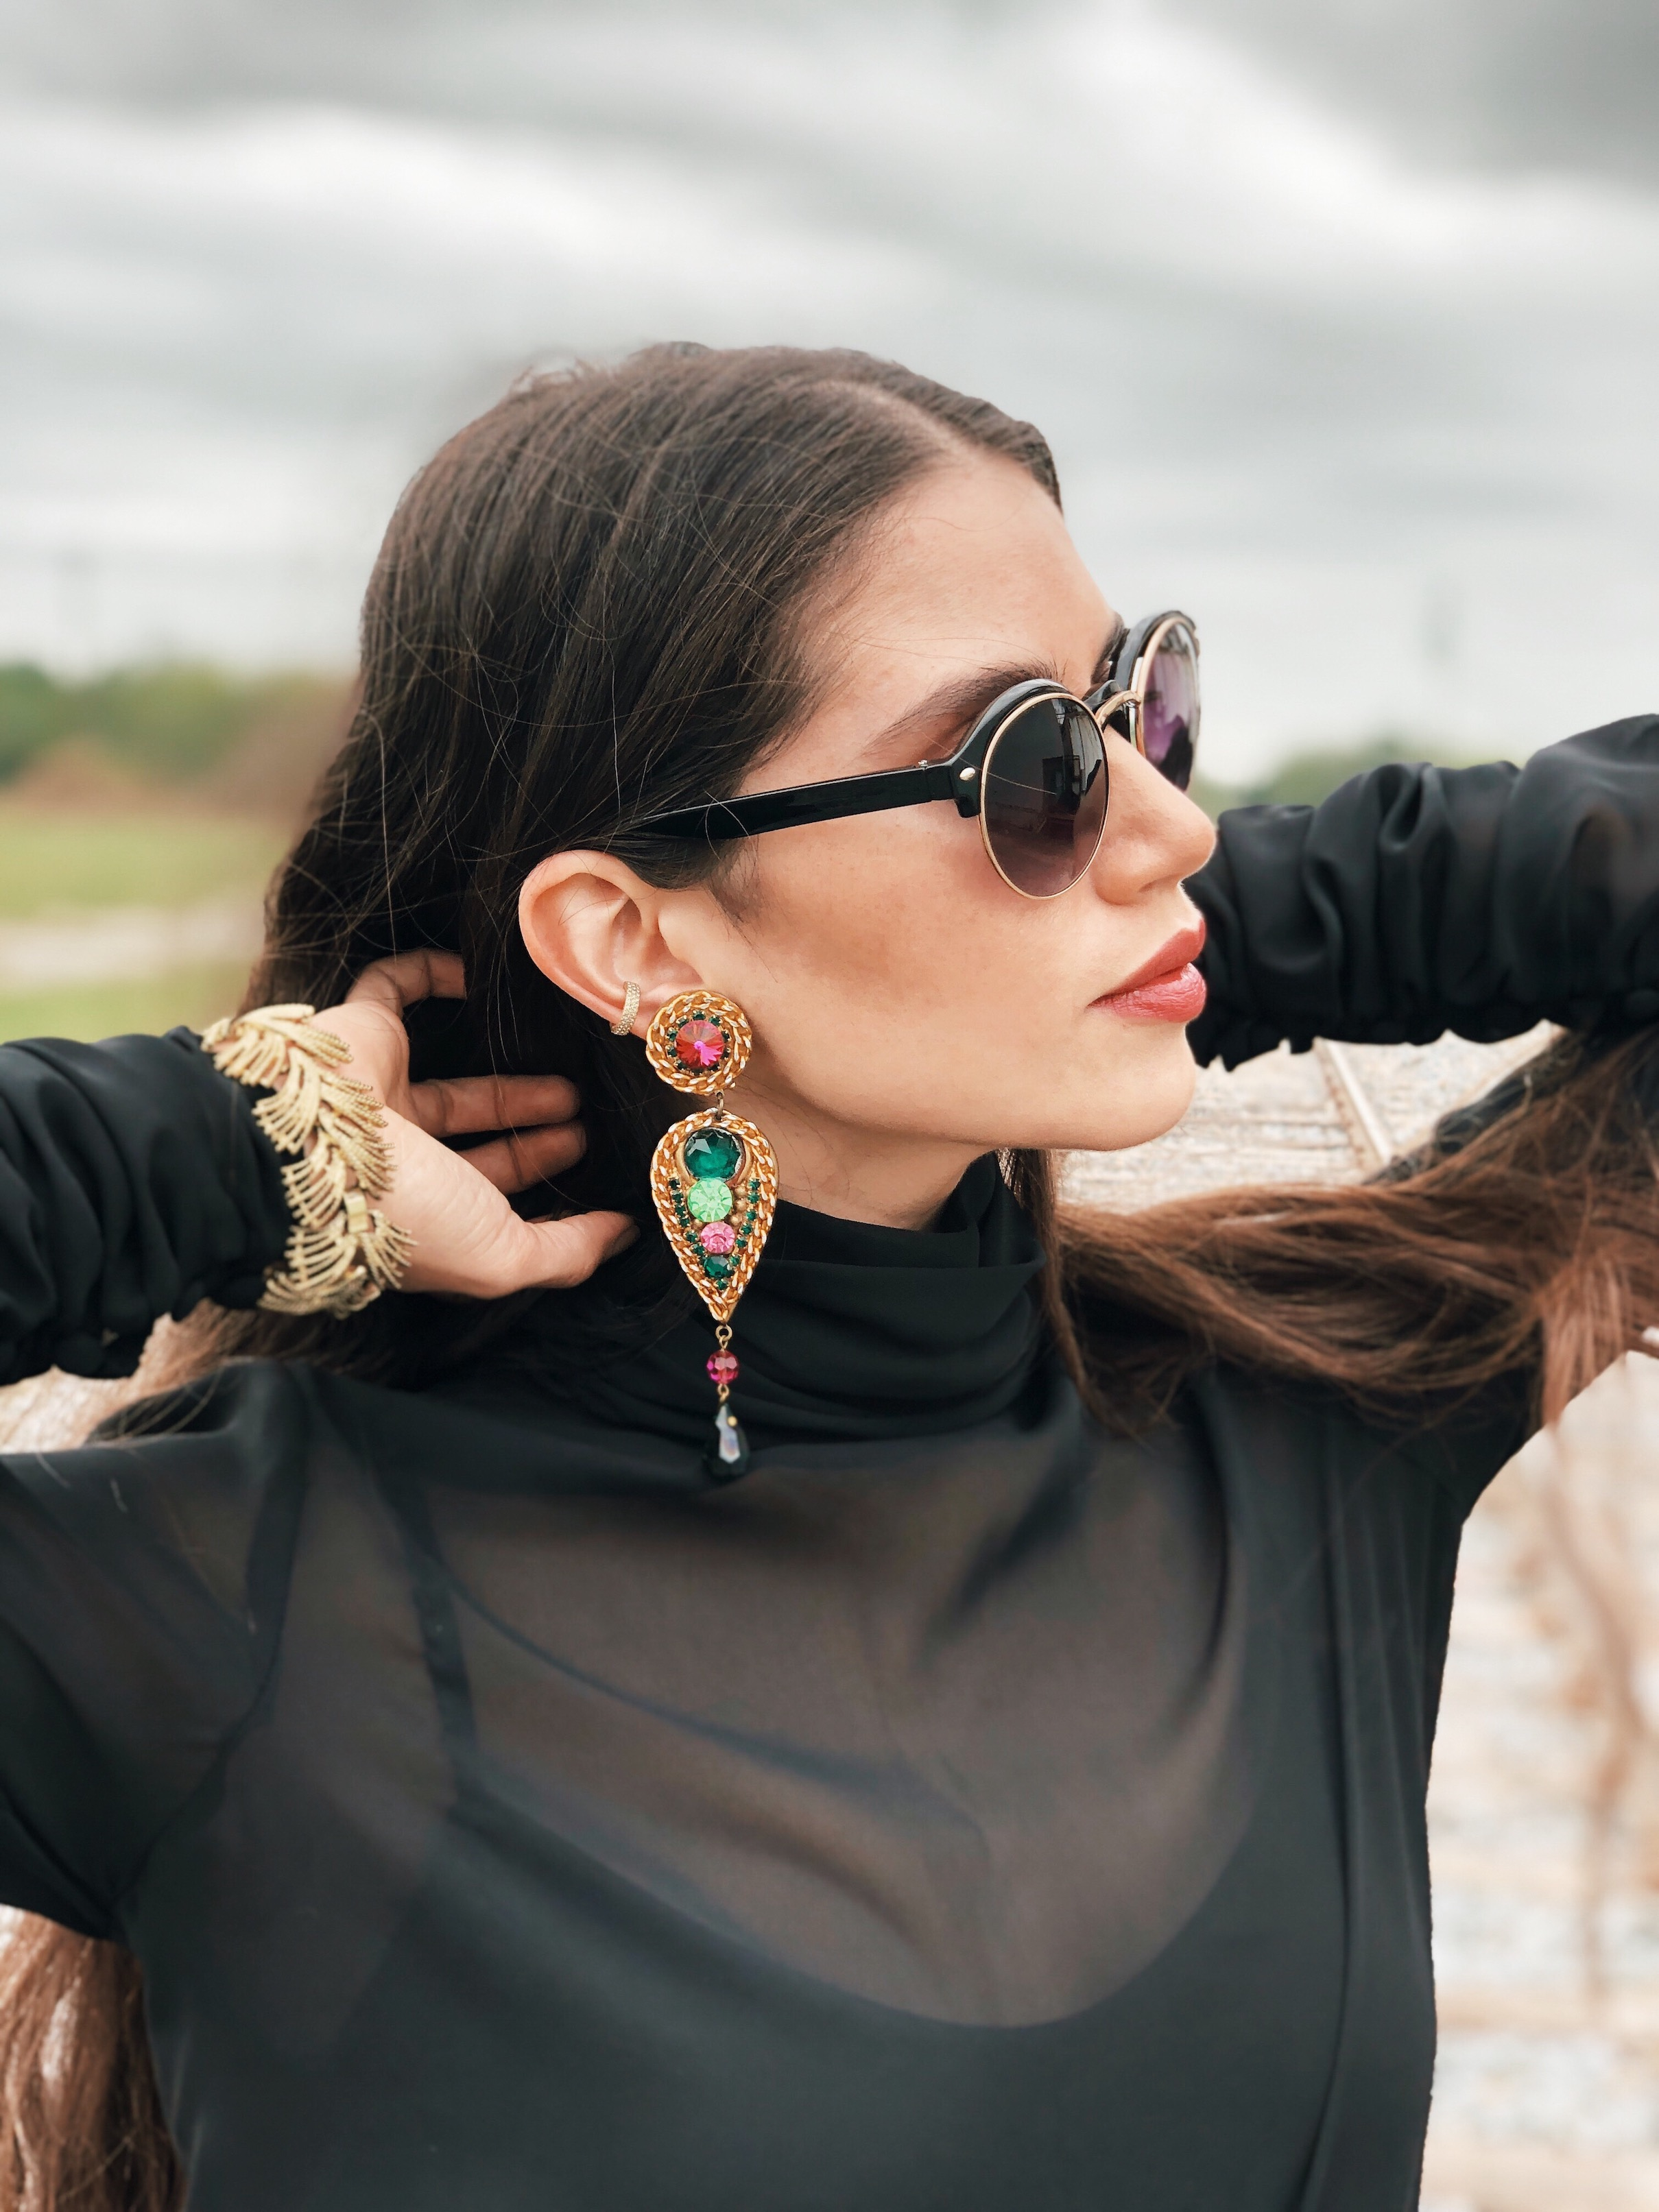 Bold statement jewelry - A Week Of Cruelty-Free Outfits & Vegan Beauty With Jessica Salazar From All There August on The Good Trade